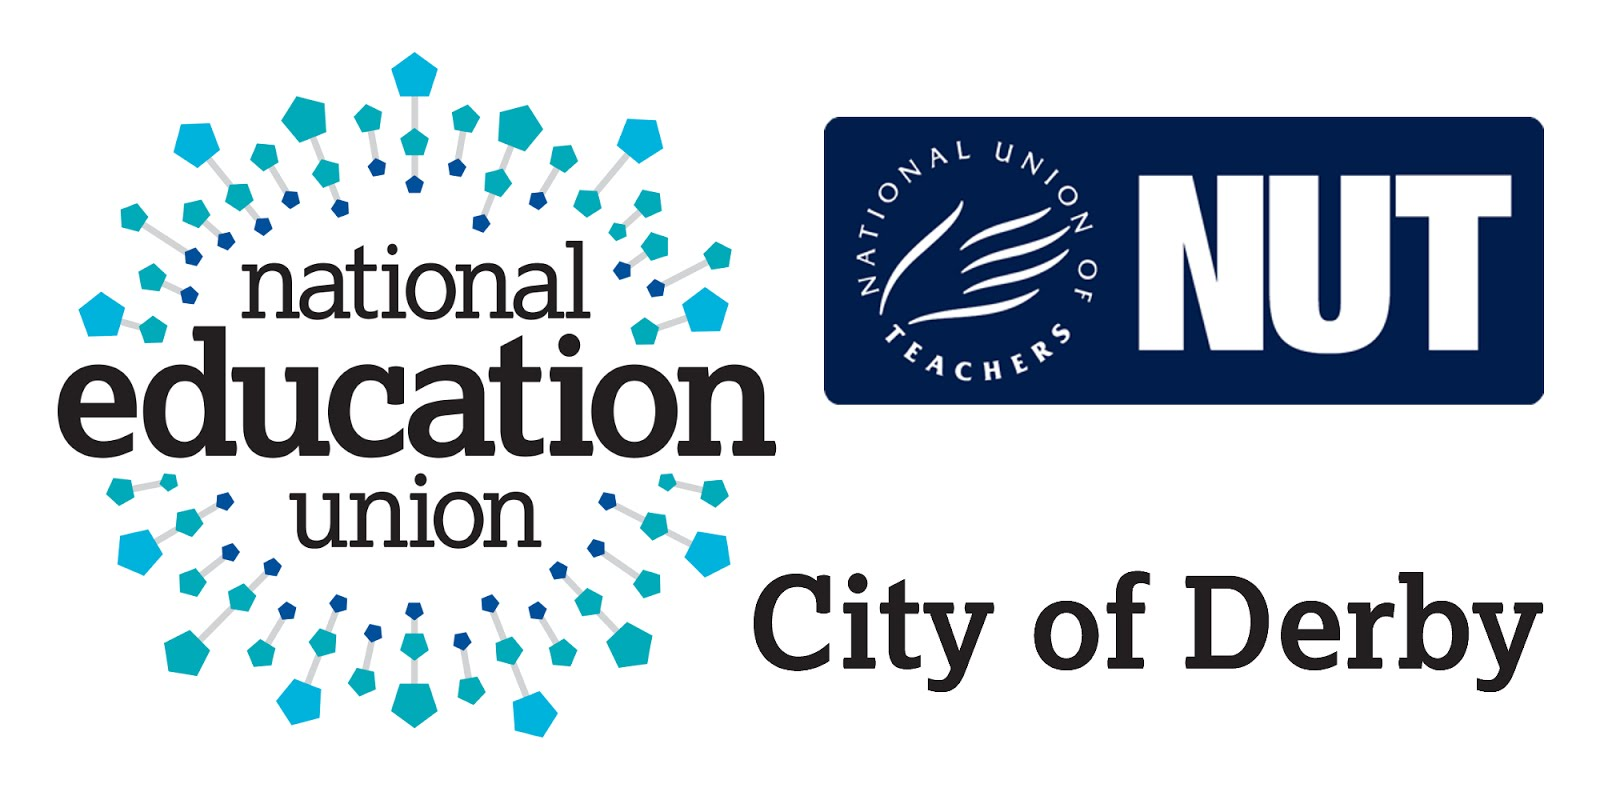 City of Derby National Education Union (NUT Section)